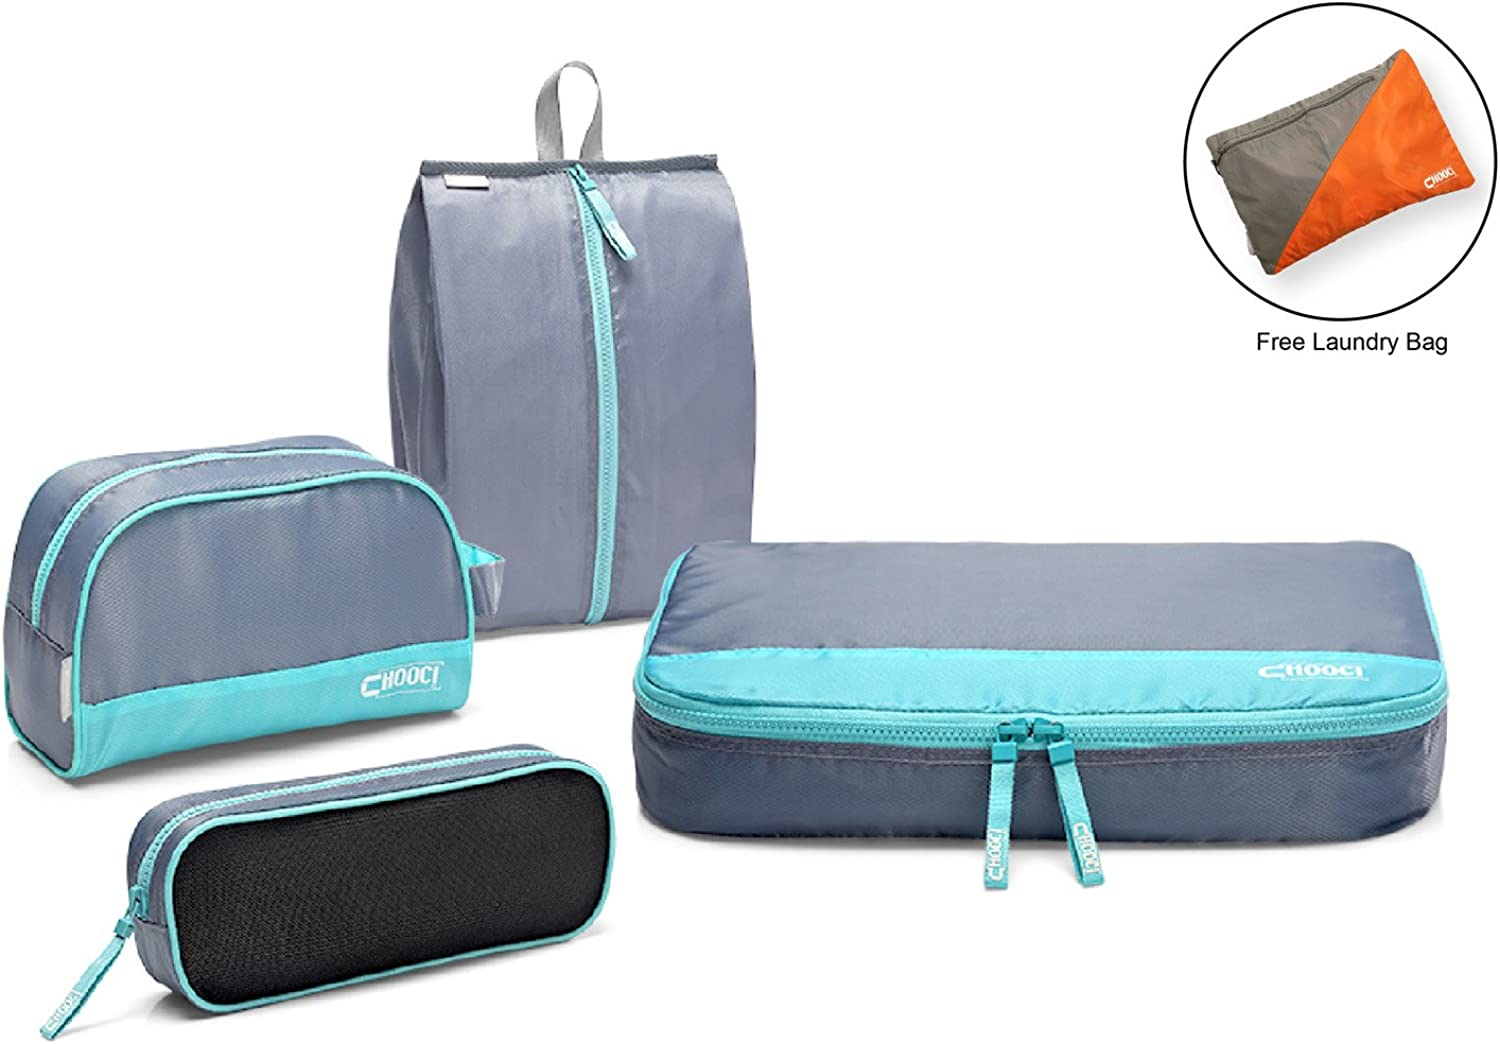 THE BEST Travel Organizer 4 Set Packing Cubes for Travel CHOOCI